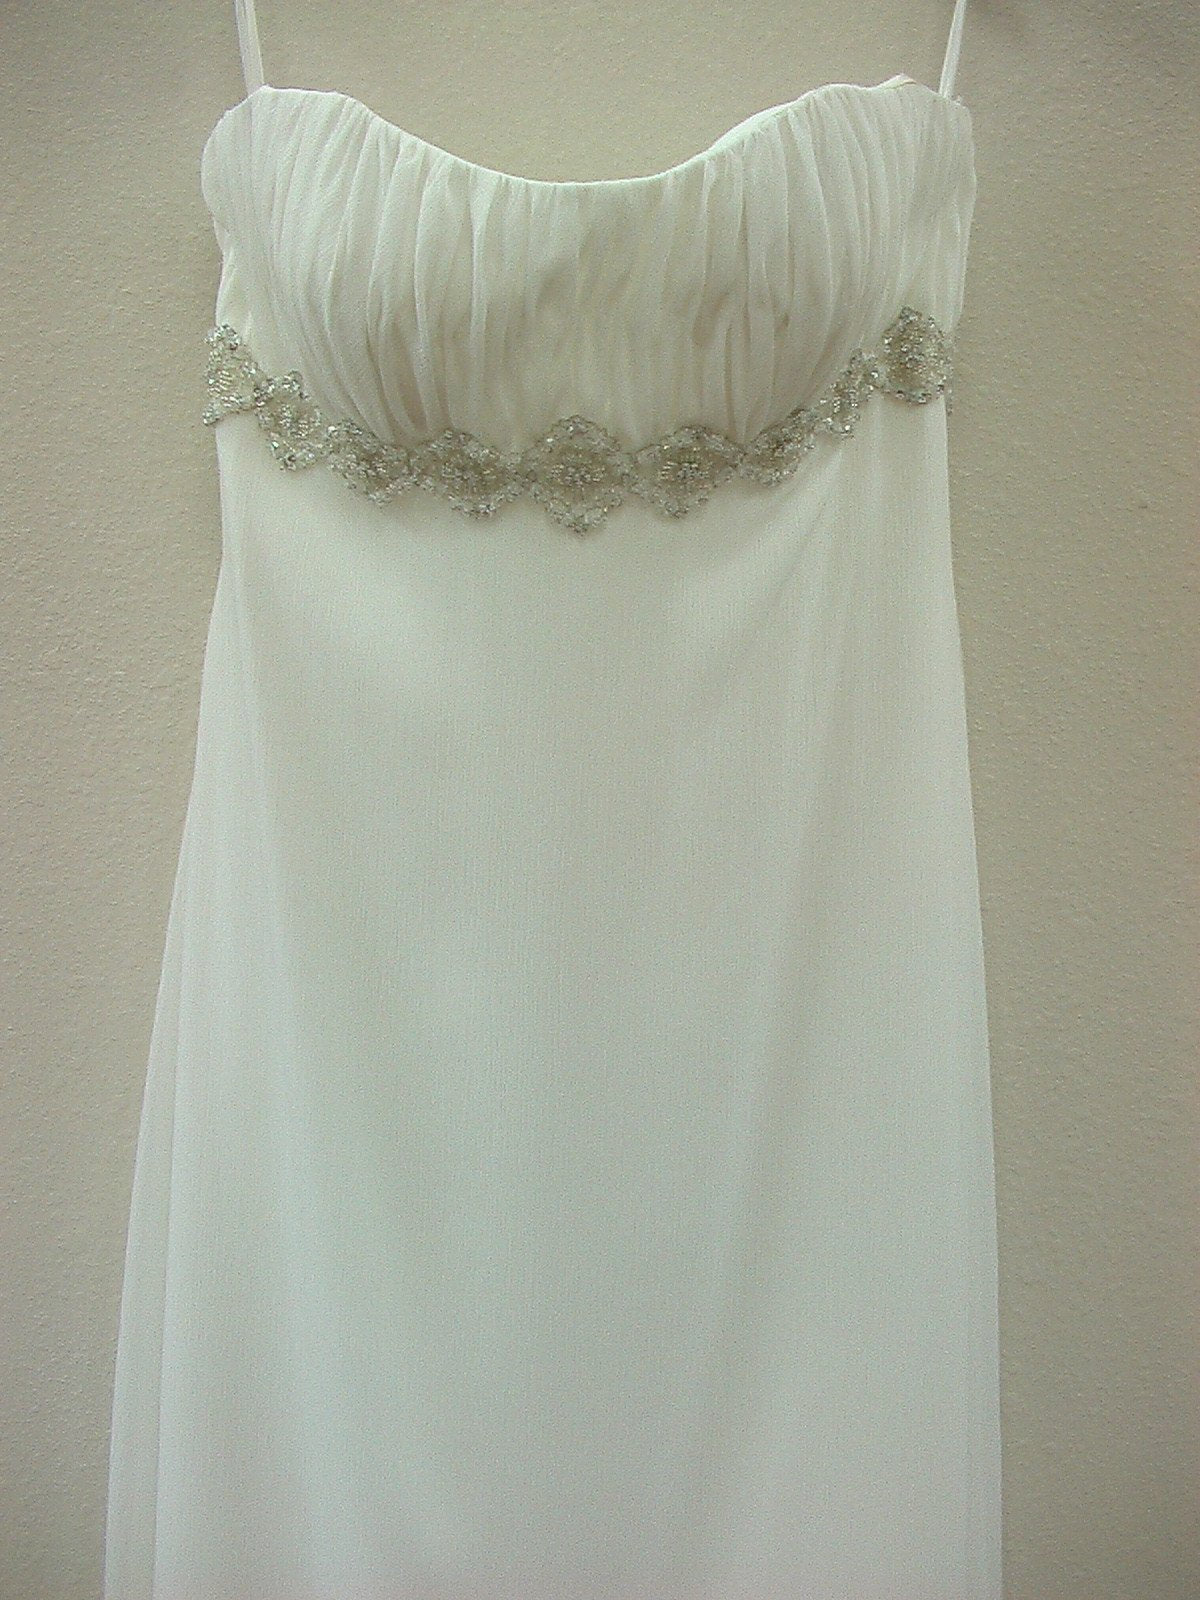 Jacquelin Exclusive 1991016 Ivory/Silver size 16 In Stock Wedding Dress - Tom's Bridal